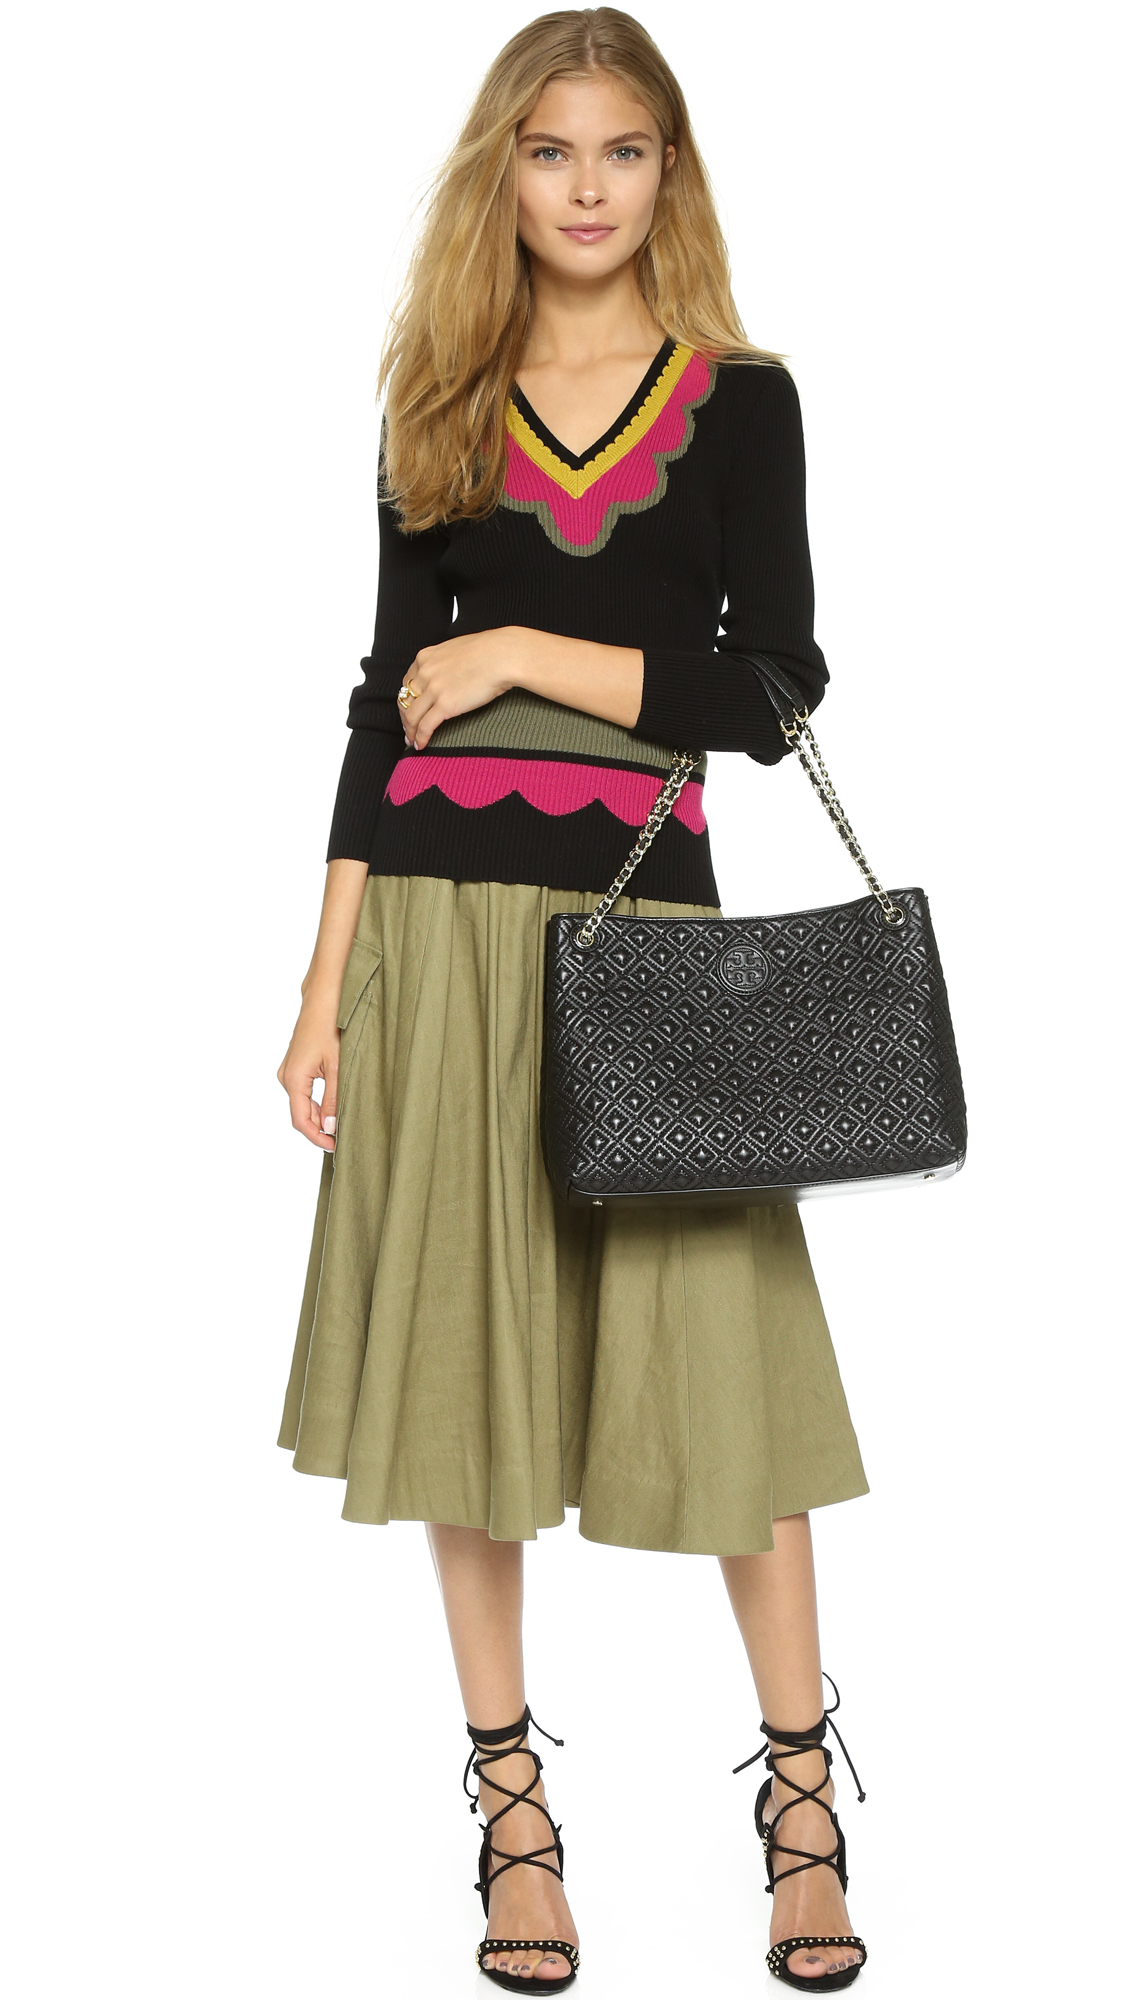 Tory Burch Marion Quilted Tote Shopbop